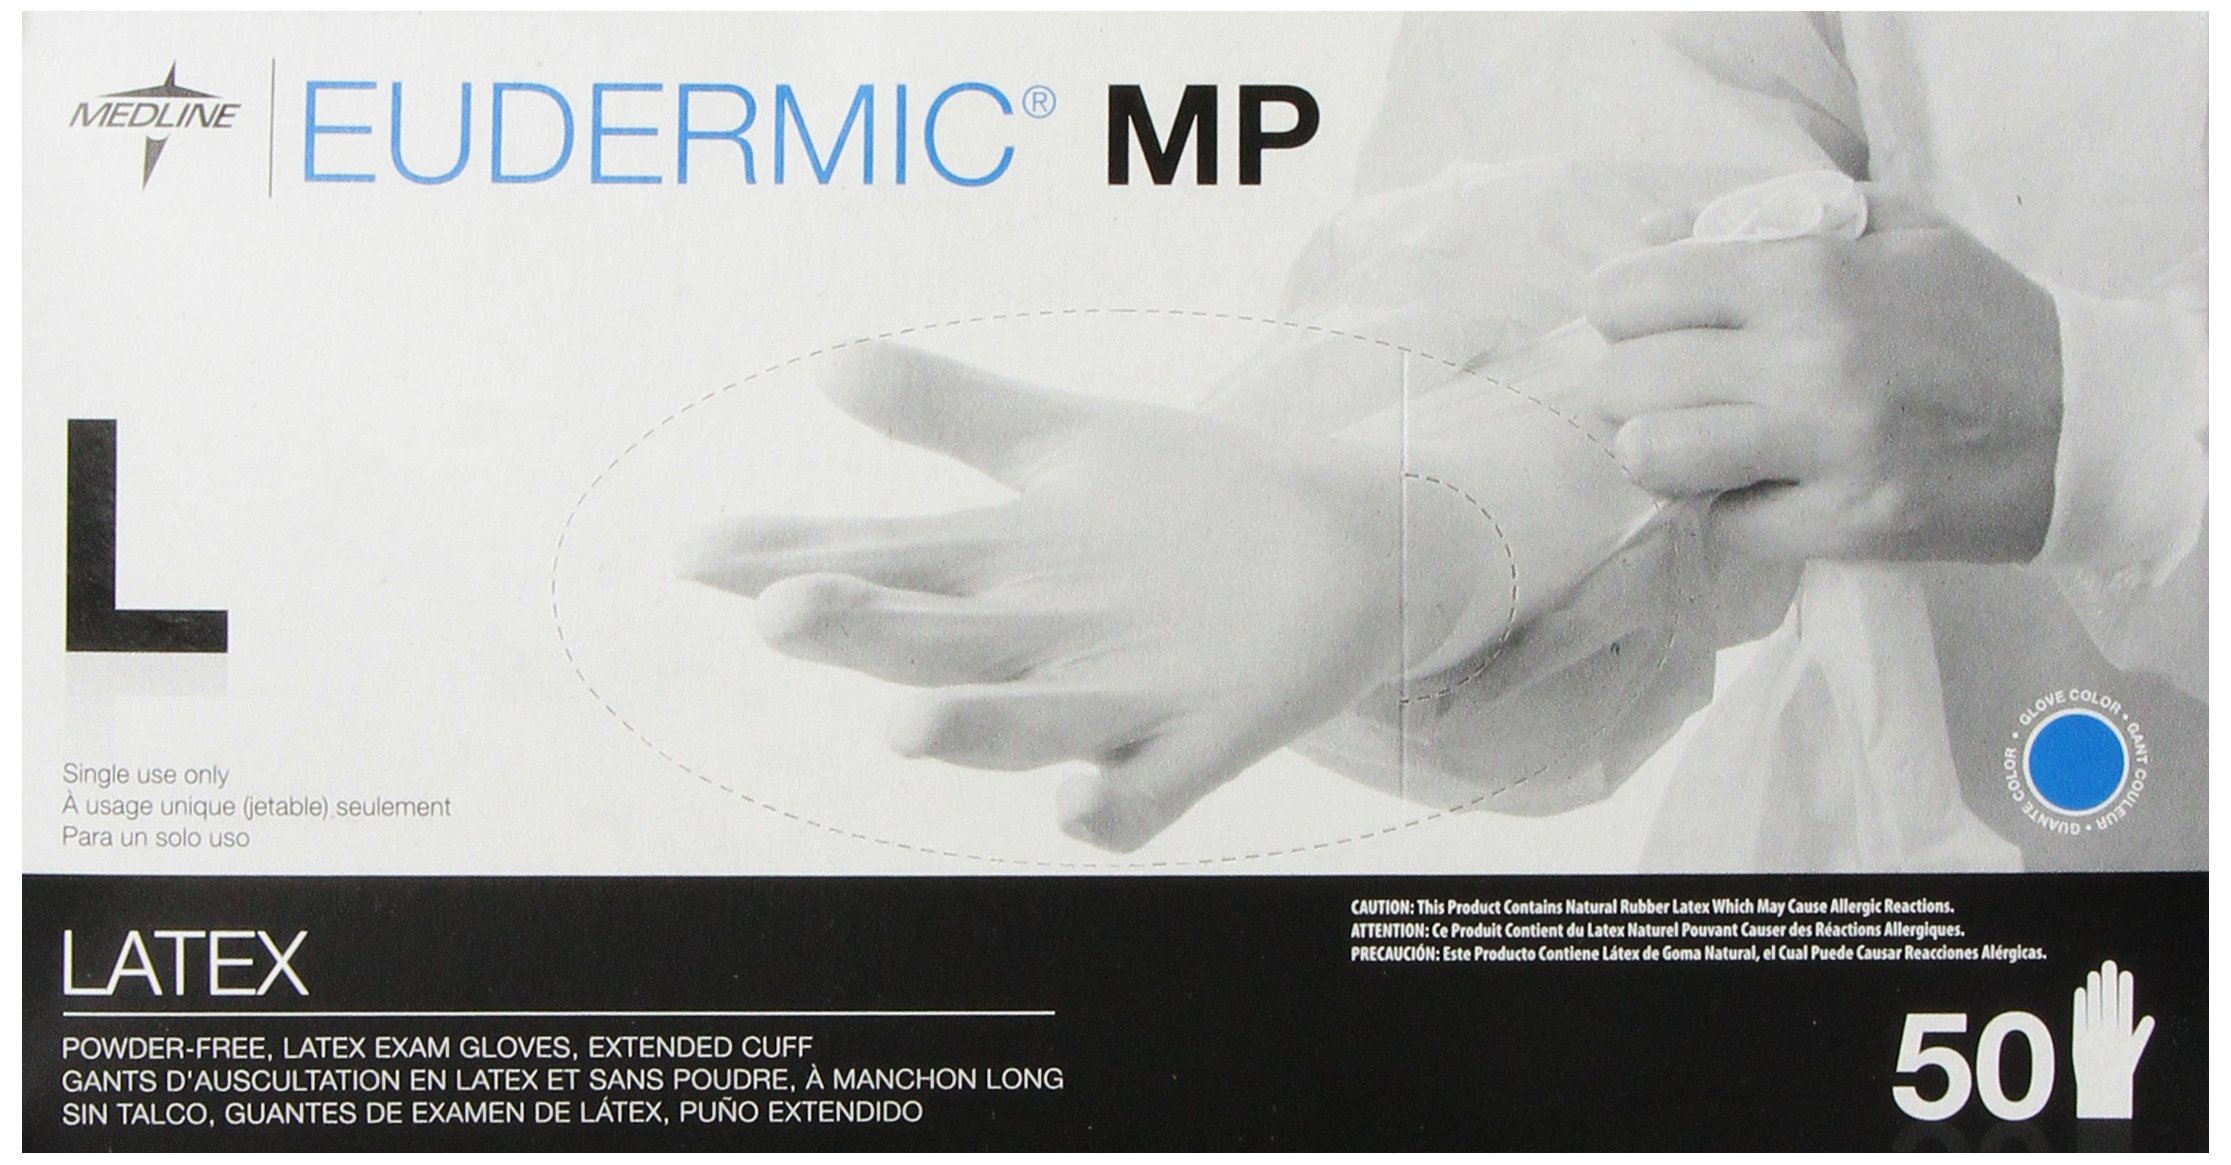 Medline Eudermic MP 12 Inches High Risk Exam Gloves, Large, 50 Count